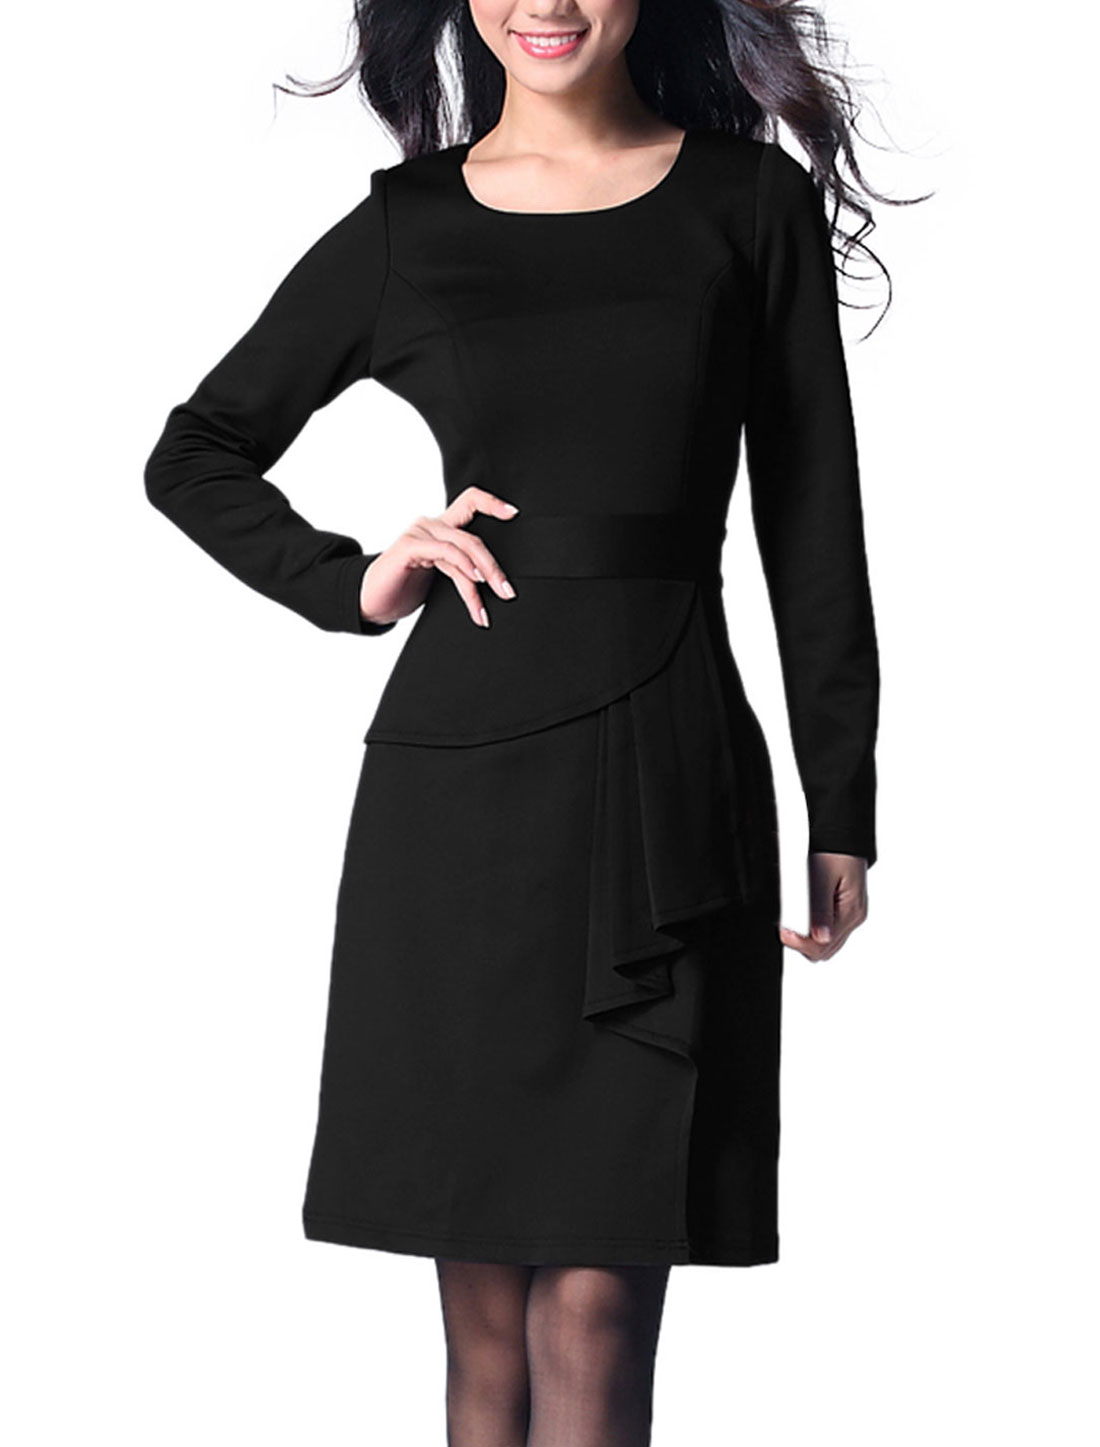 Ladies Black Long Sleeve Side Zipper Elegant Spring Office Dress S